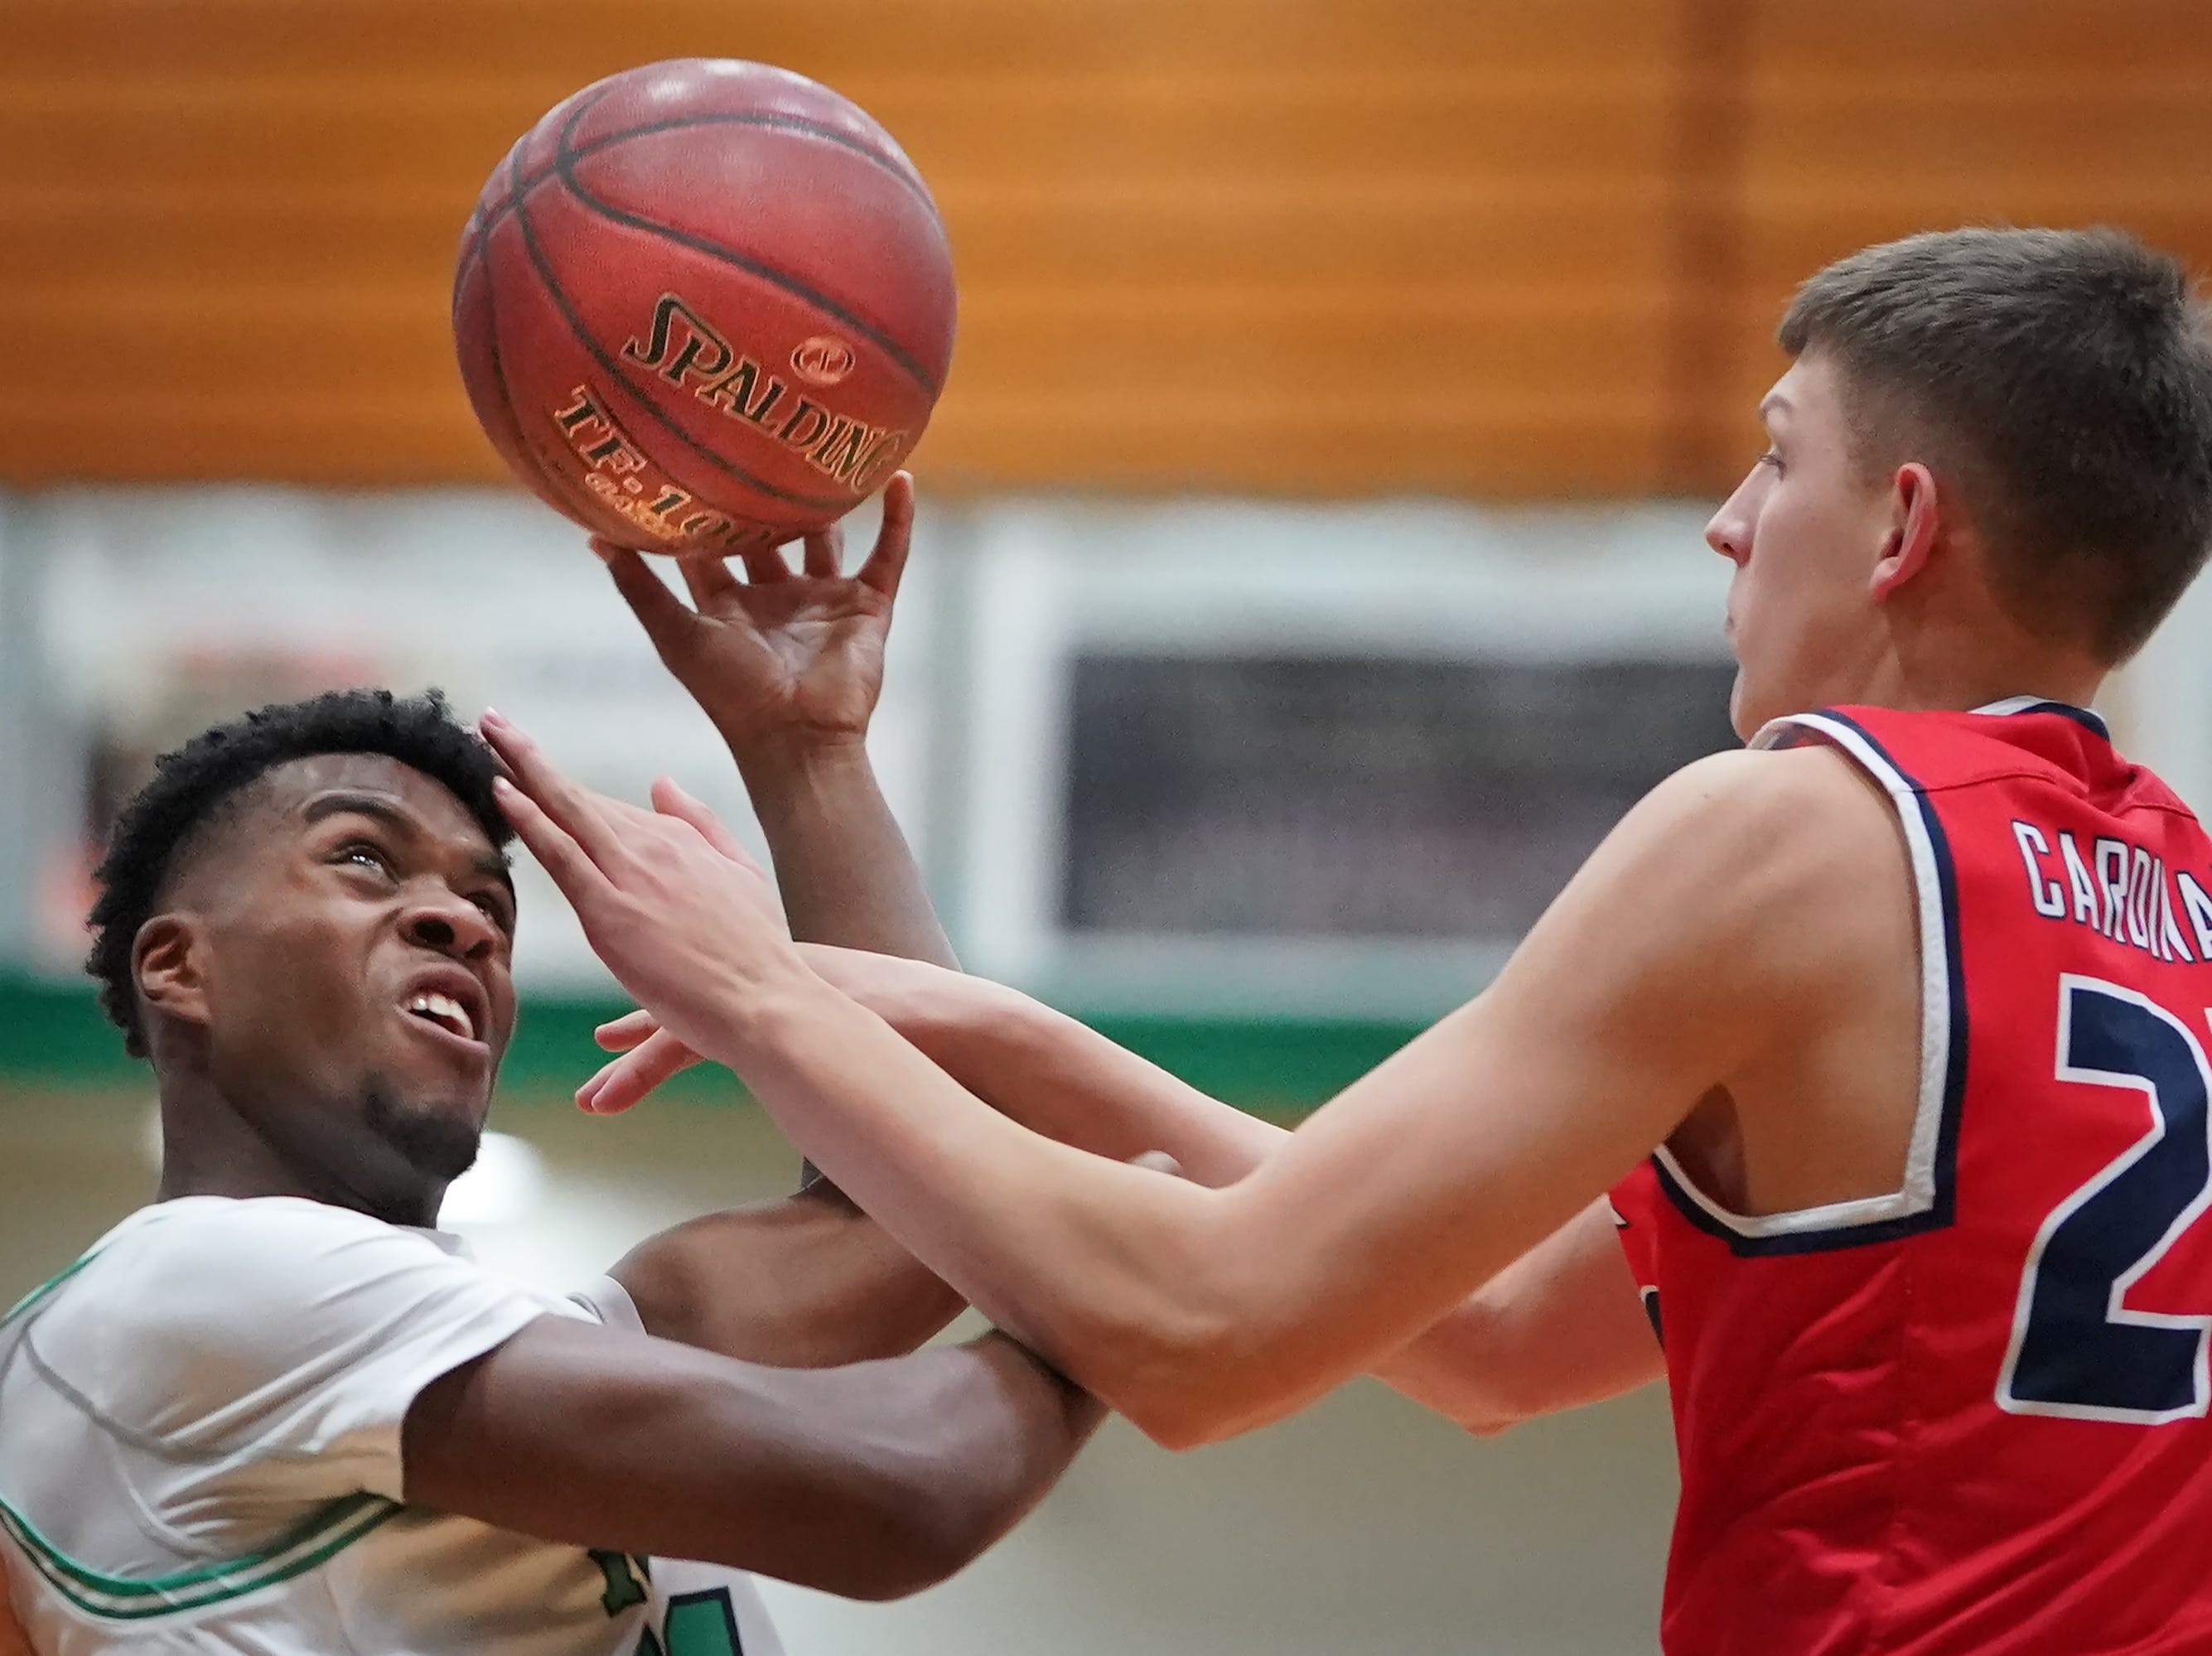 Abe Schiek (11) of Oshkosh North tries to get a shot past Elliot Parks (22) of Pacelli. The Oshkosh North Spartans hosted the Stevens Point Pacelli Catholic Cardinals in the Friday night game of the Fox River Brewing Thanksgiving Classic Tournament.